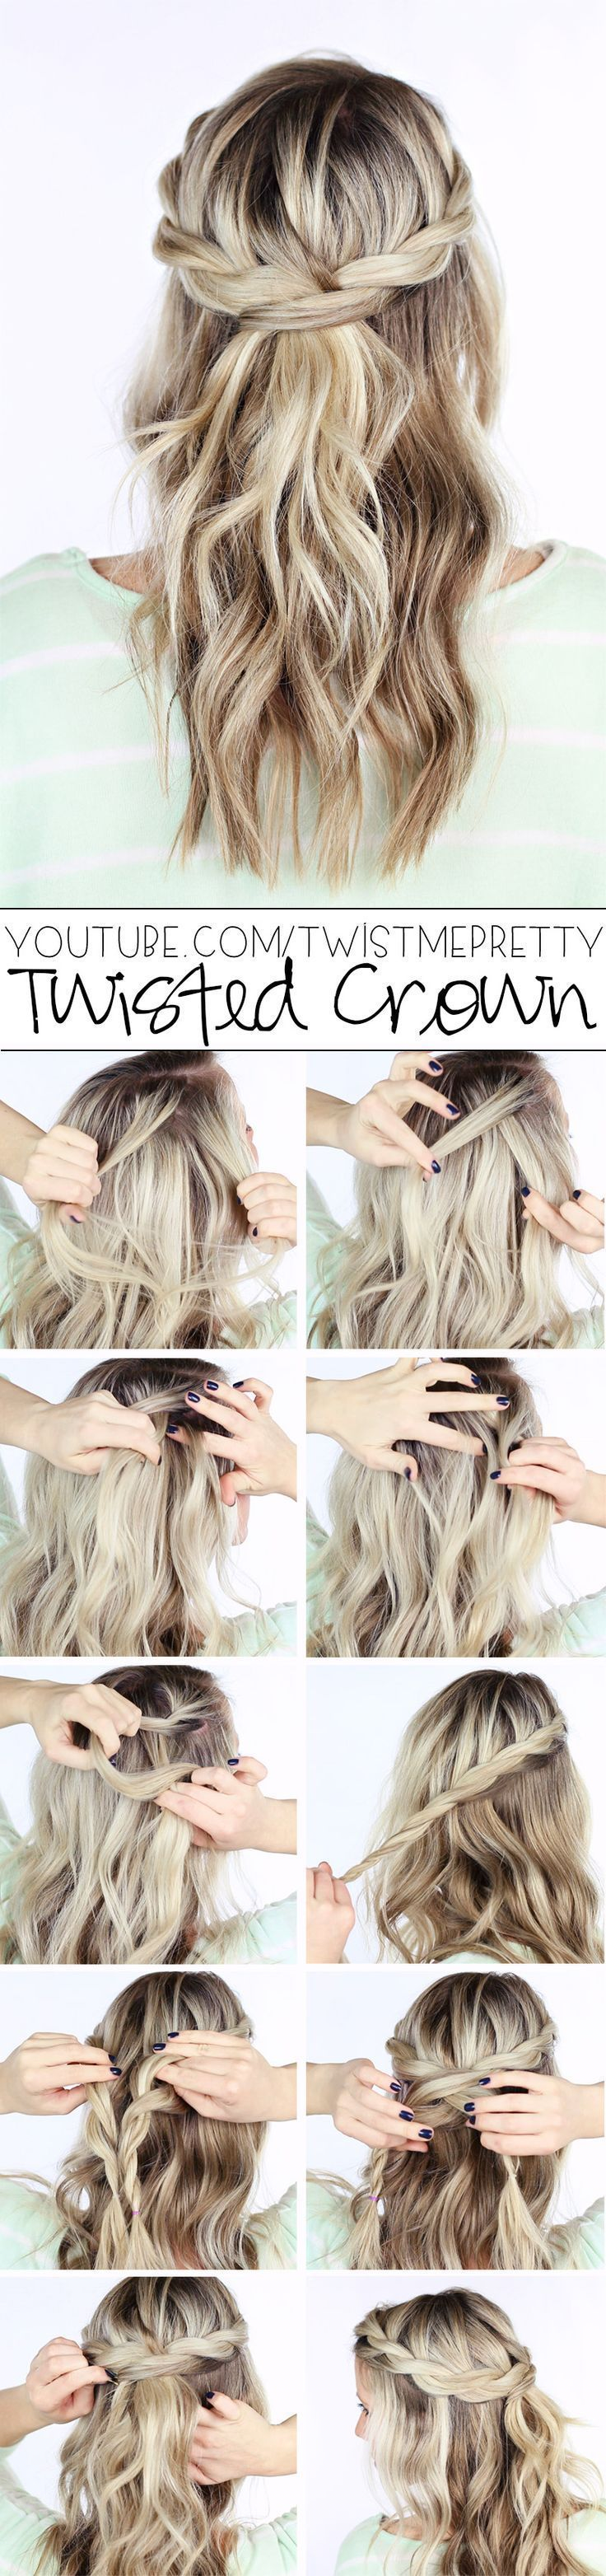 DIY Wedding Hairstyle – Twisted crown braid half up half down ...